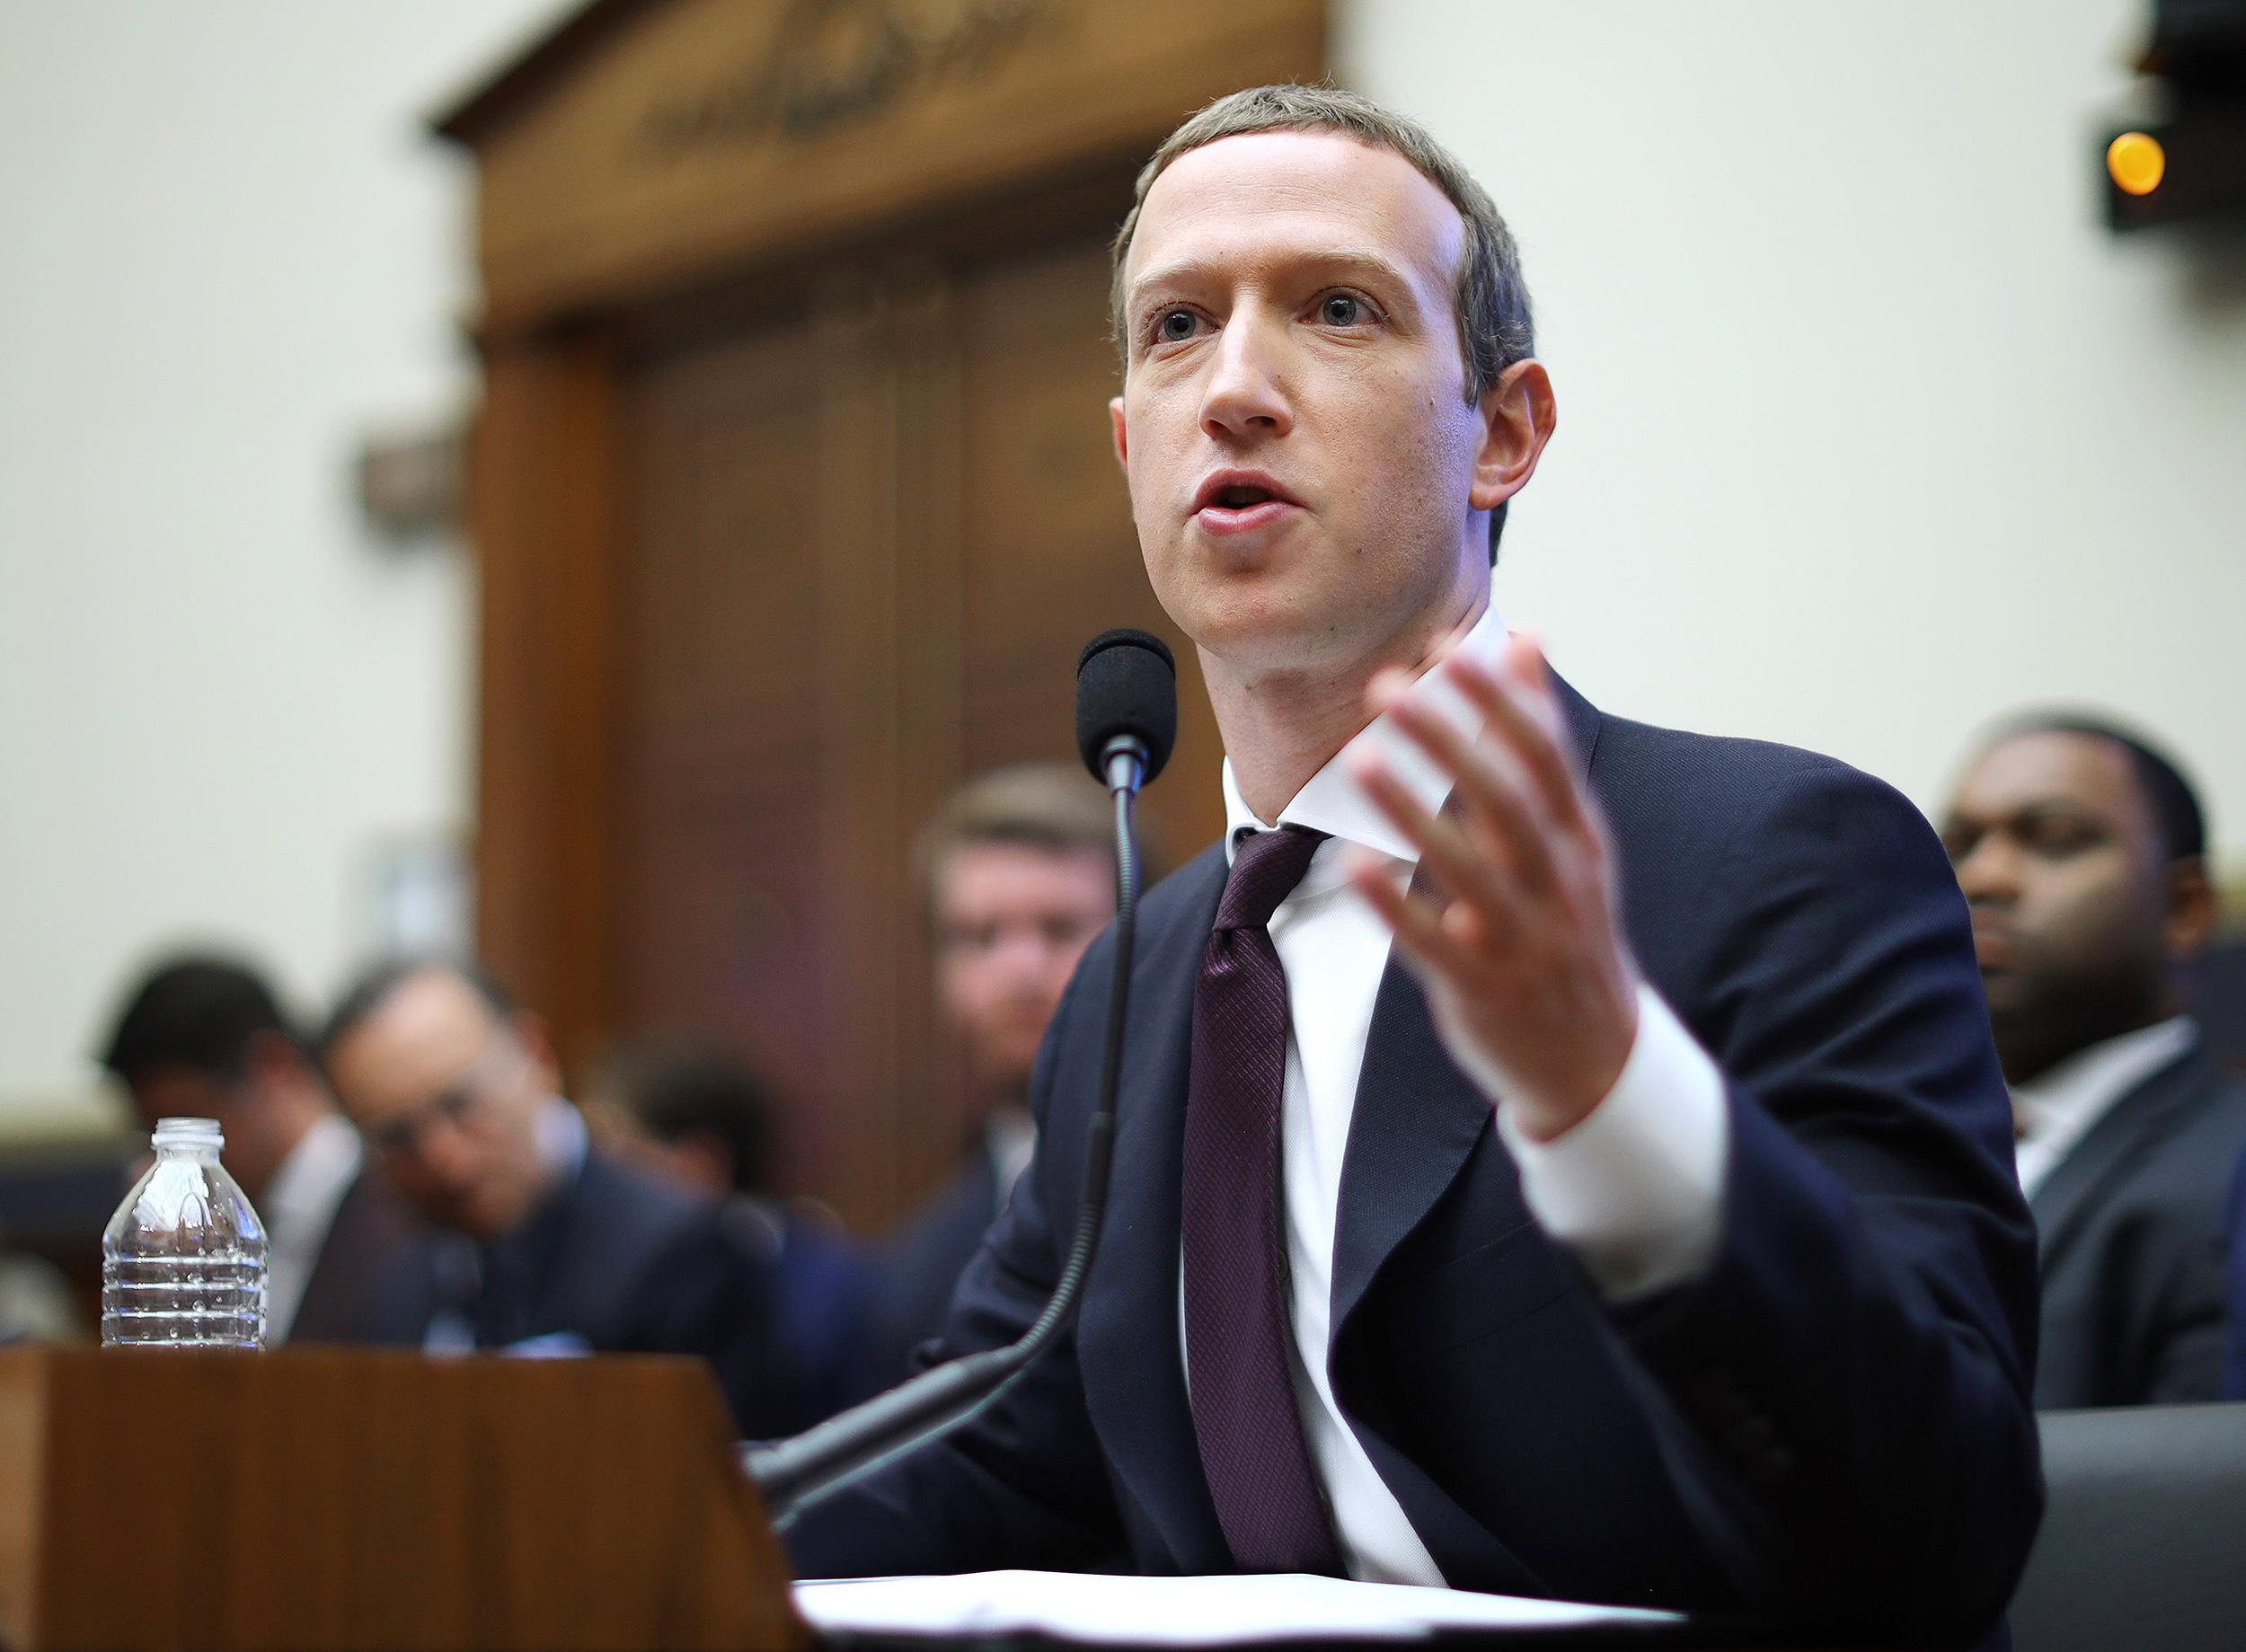 Here's what the four tech CEOs plan to say at the big hearing